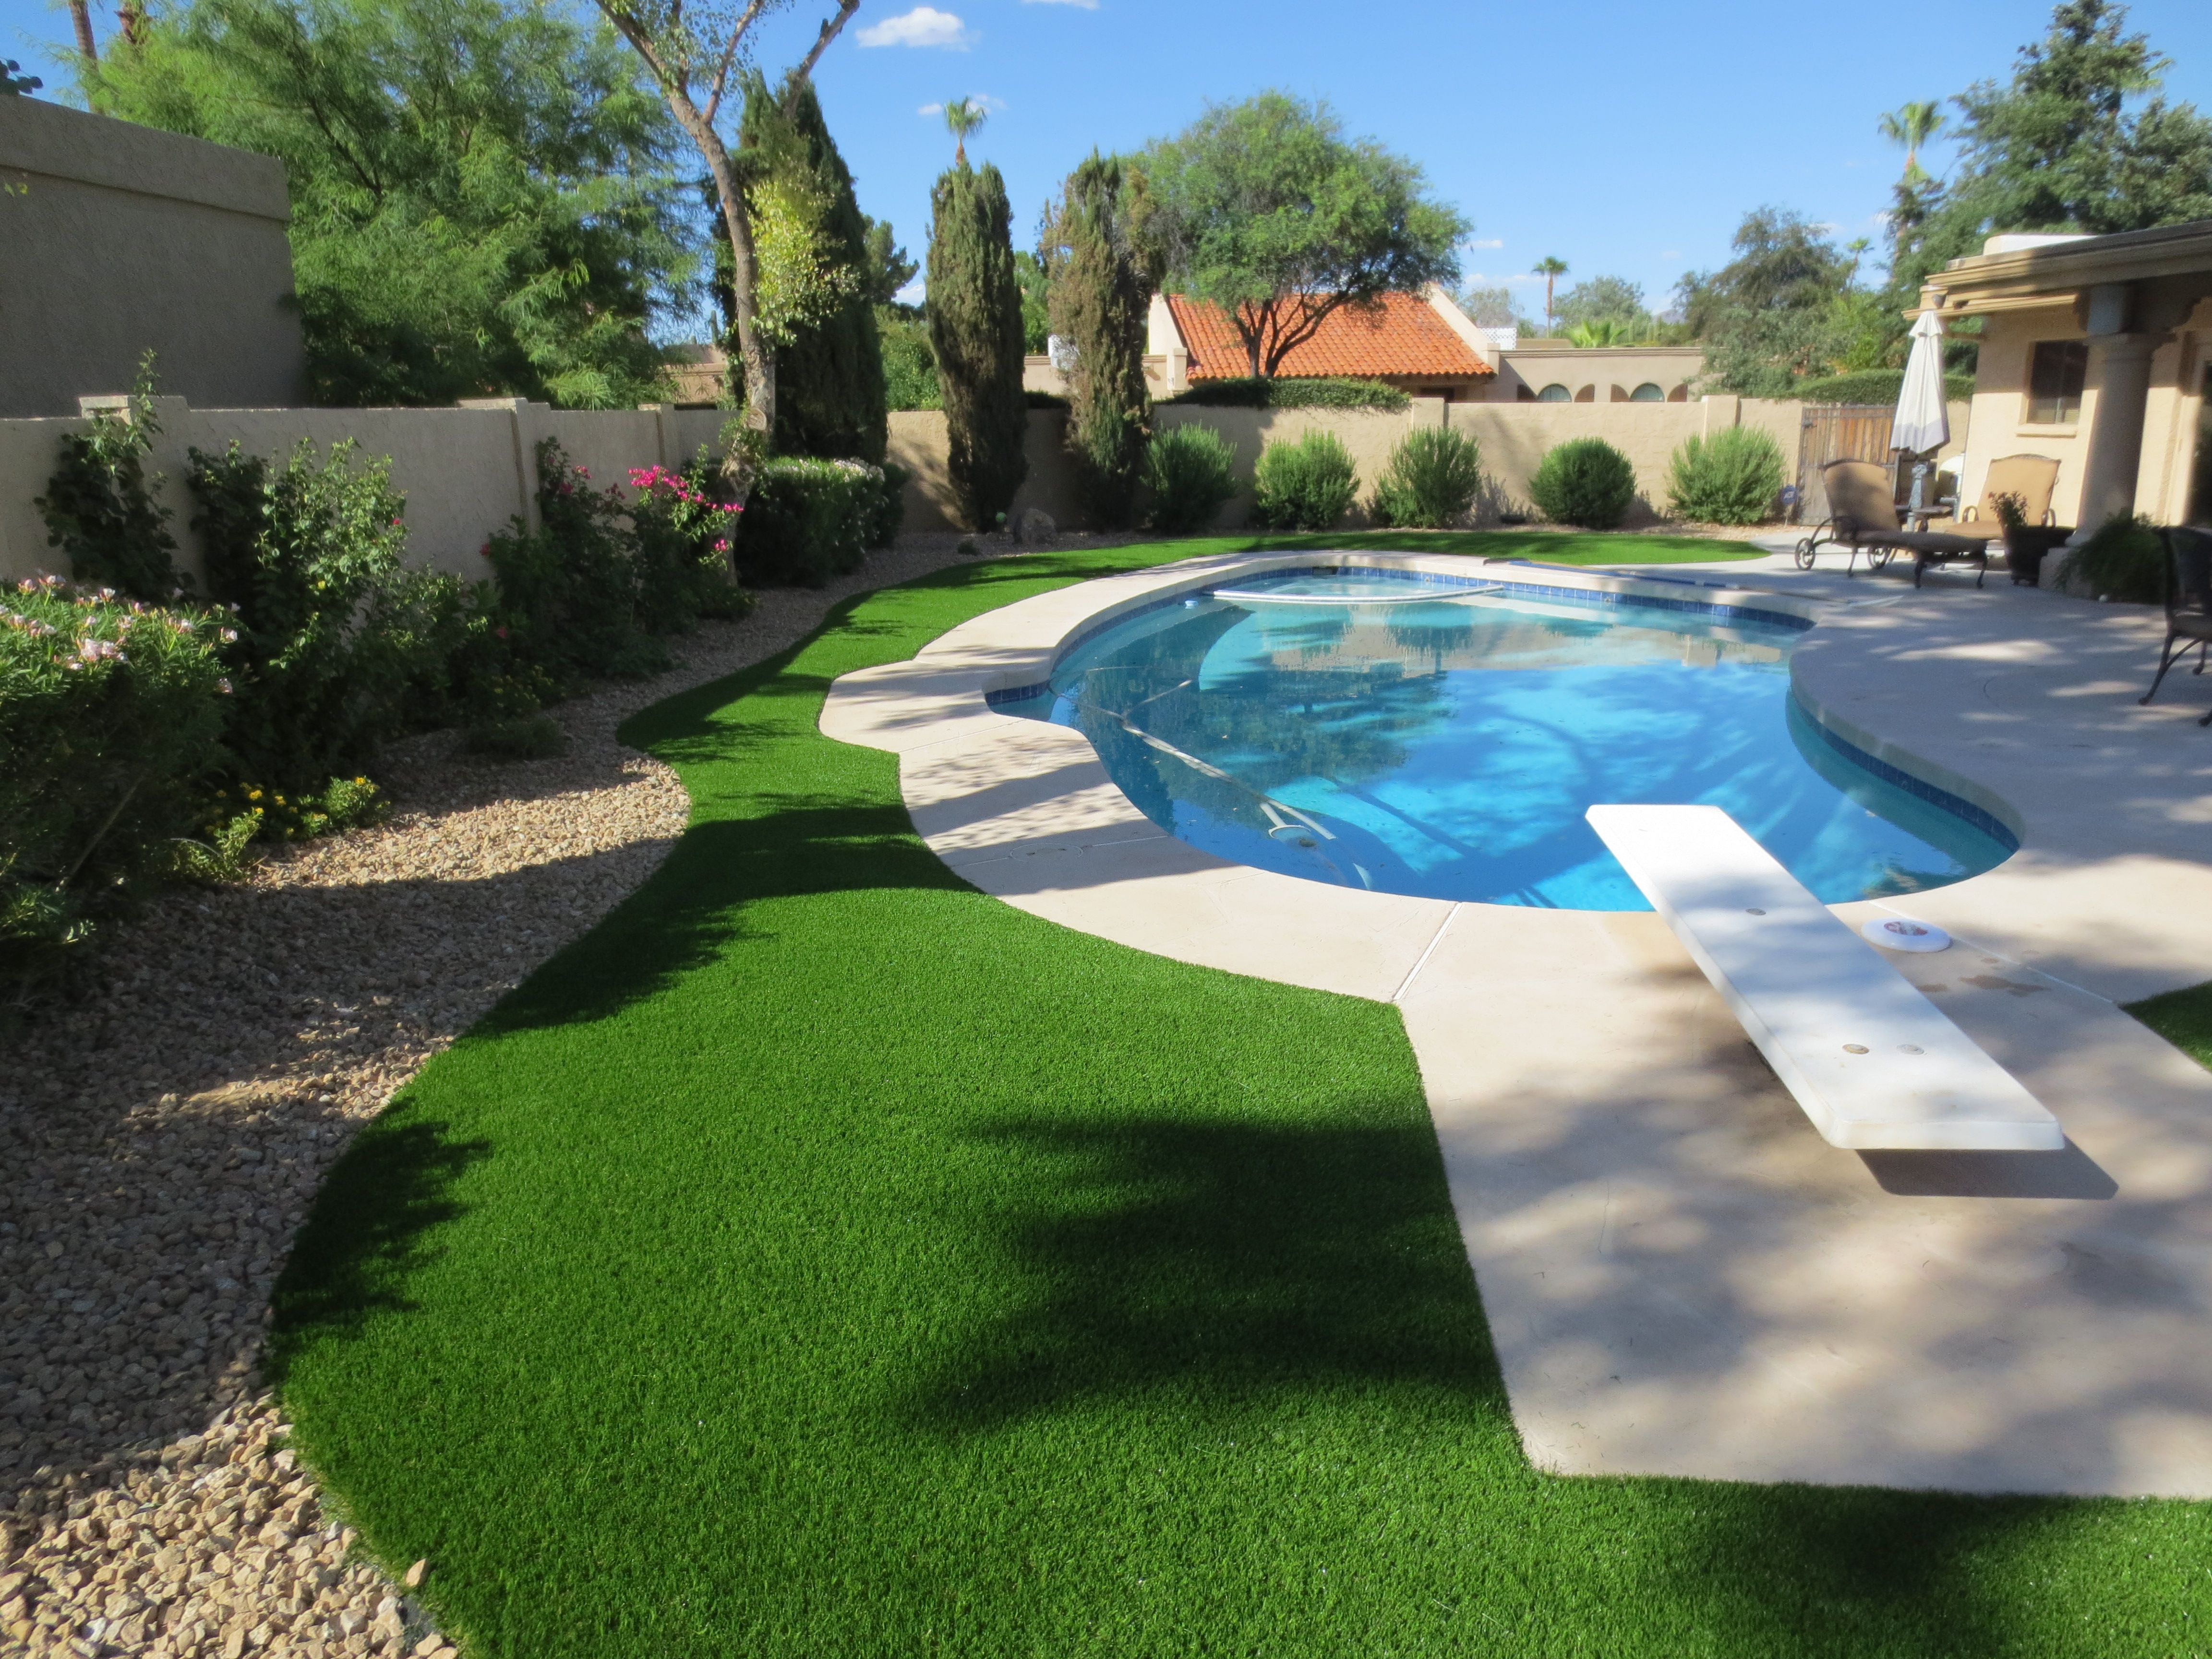 Artificial Grass Next To Your Pool Creates A Backyard Oasis Free Estimate At Paradisegreens Co Backyard Landscaping Artificial Grass Backyard Pool Landscaping